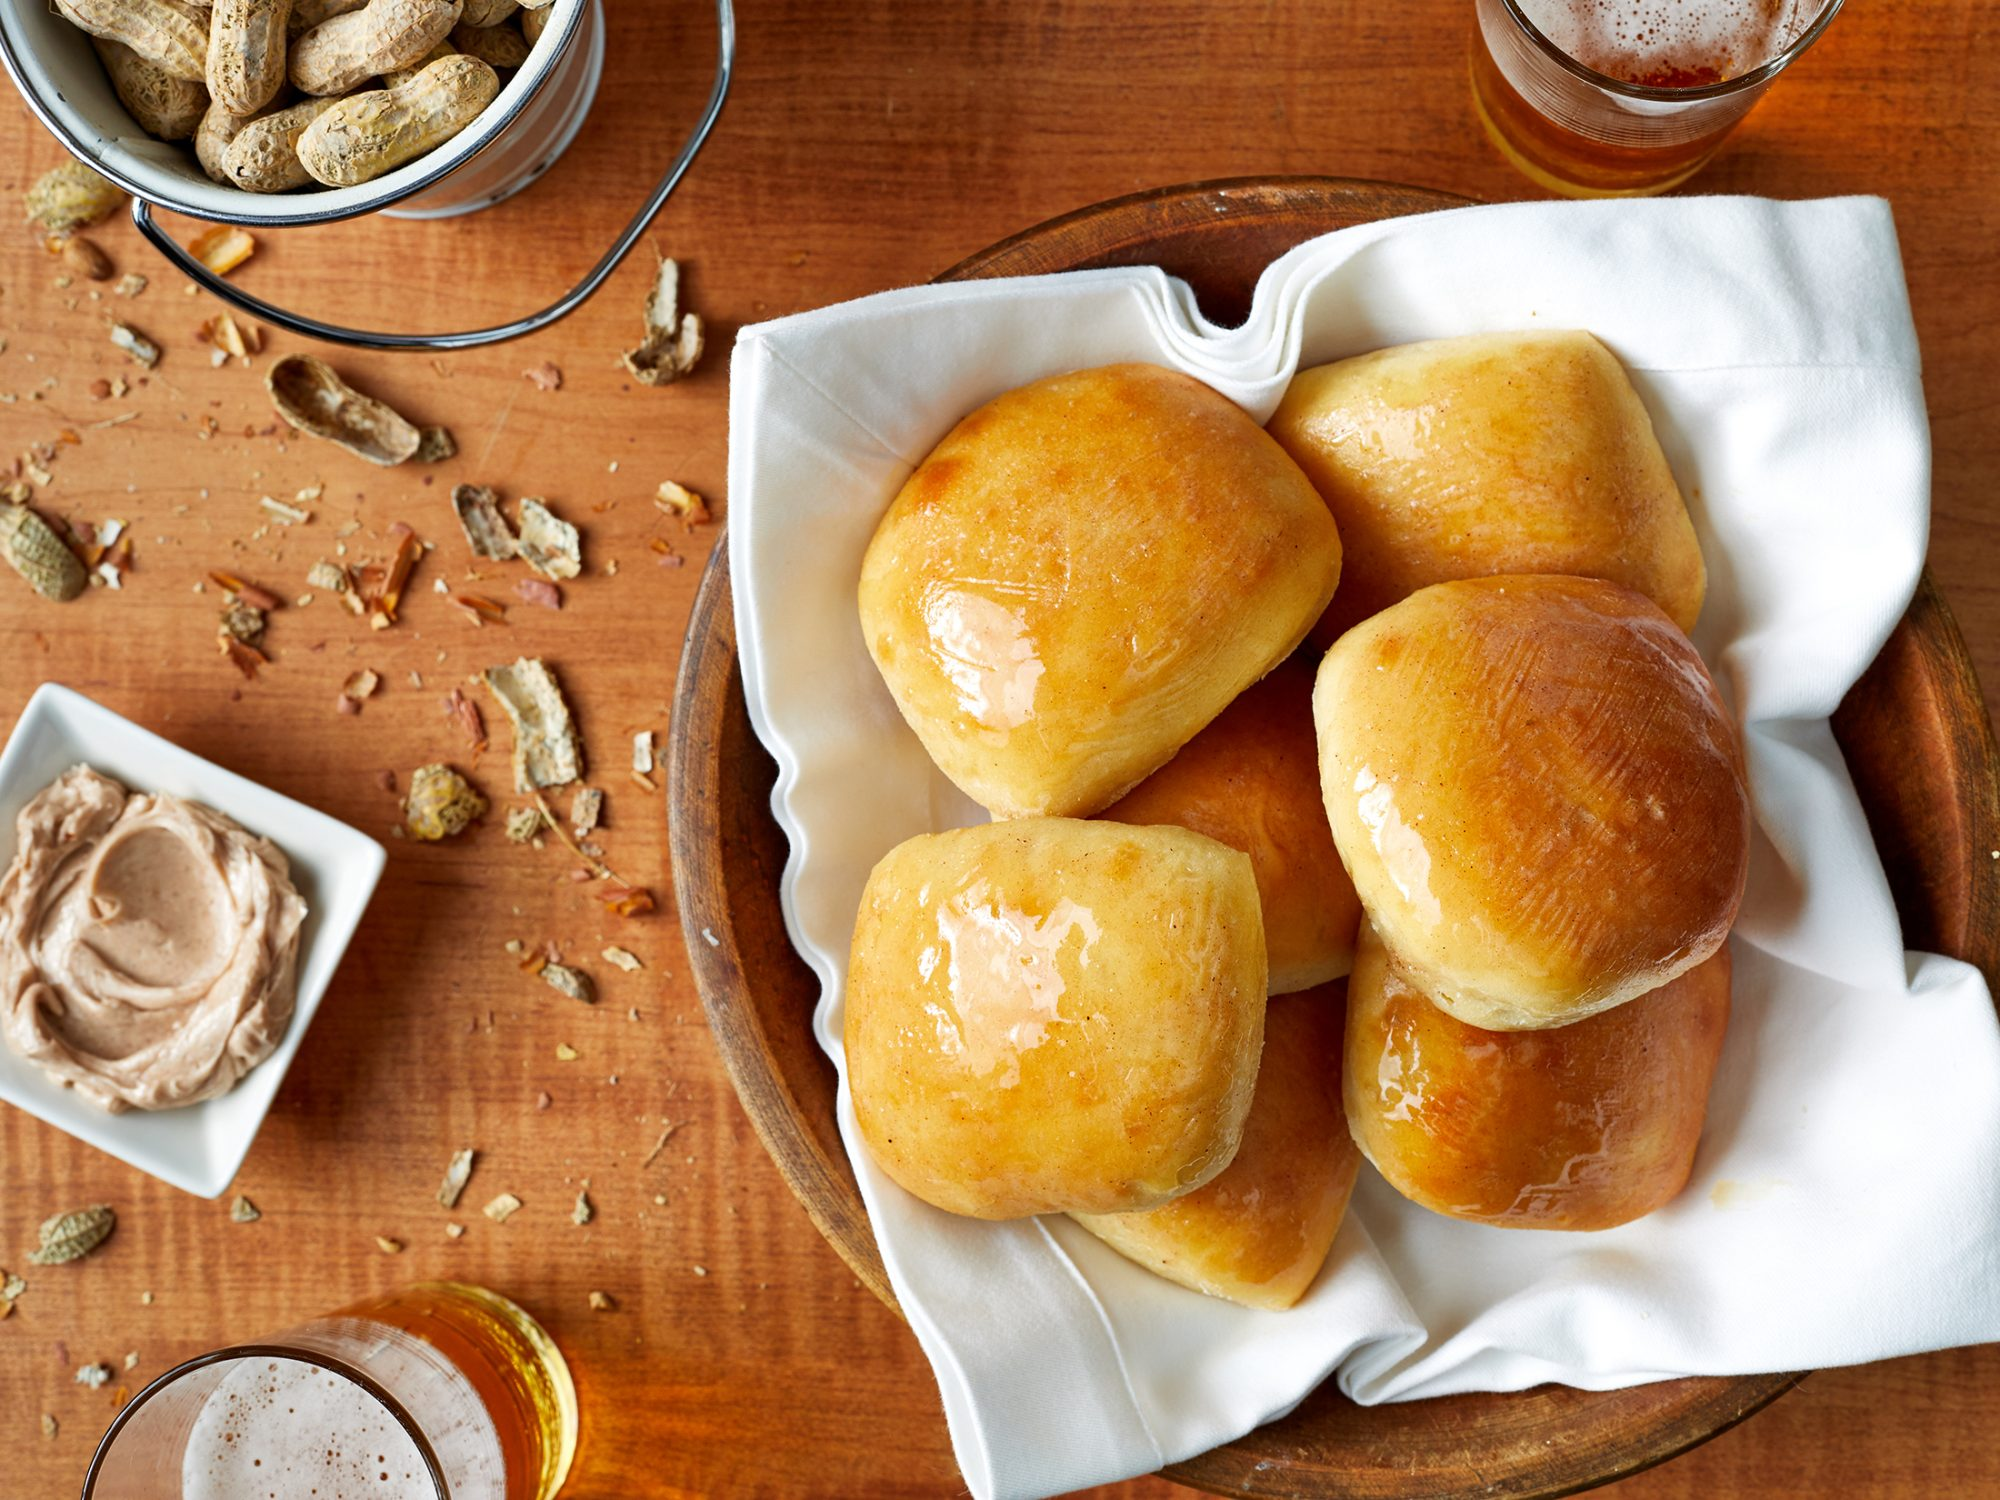 Texas Roadhouse Rolls with Cinnamon-Honey Butter image